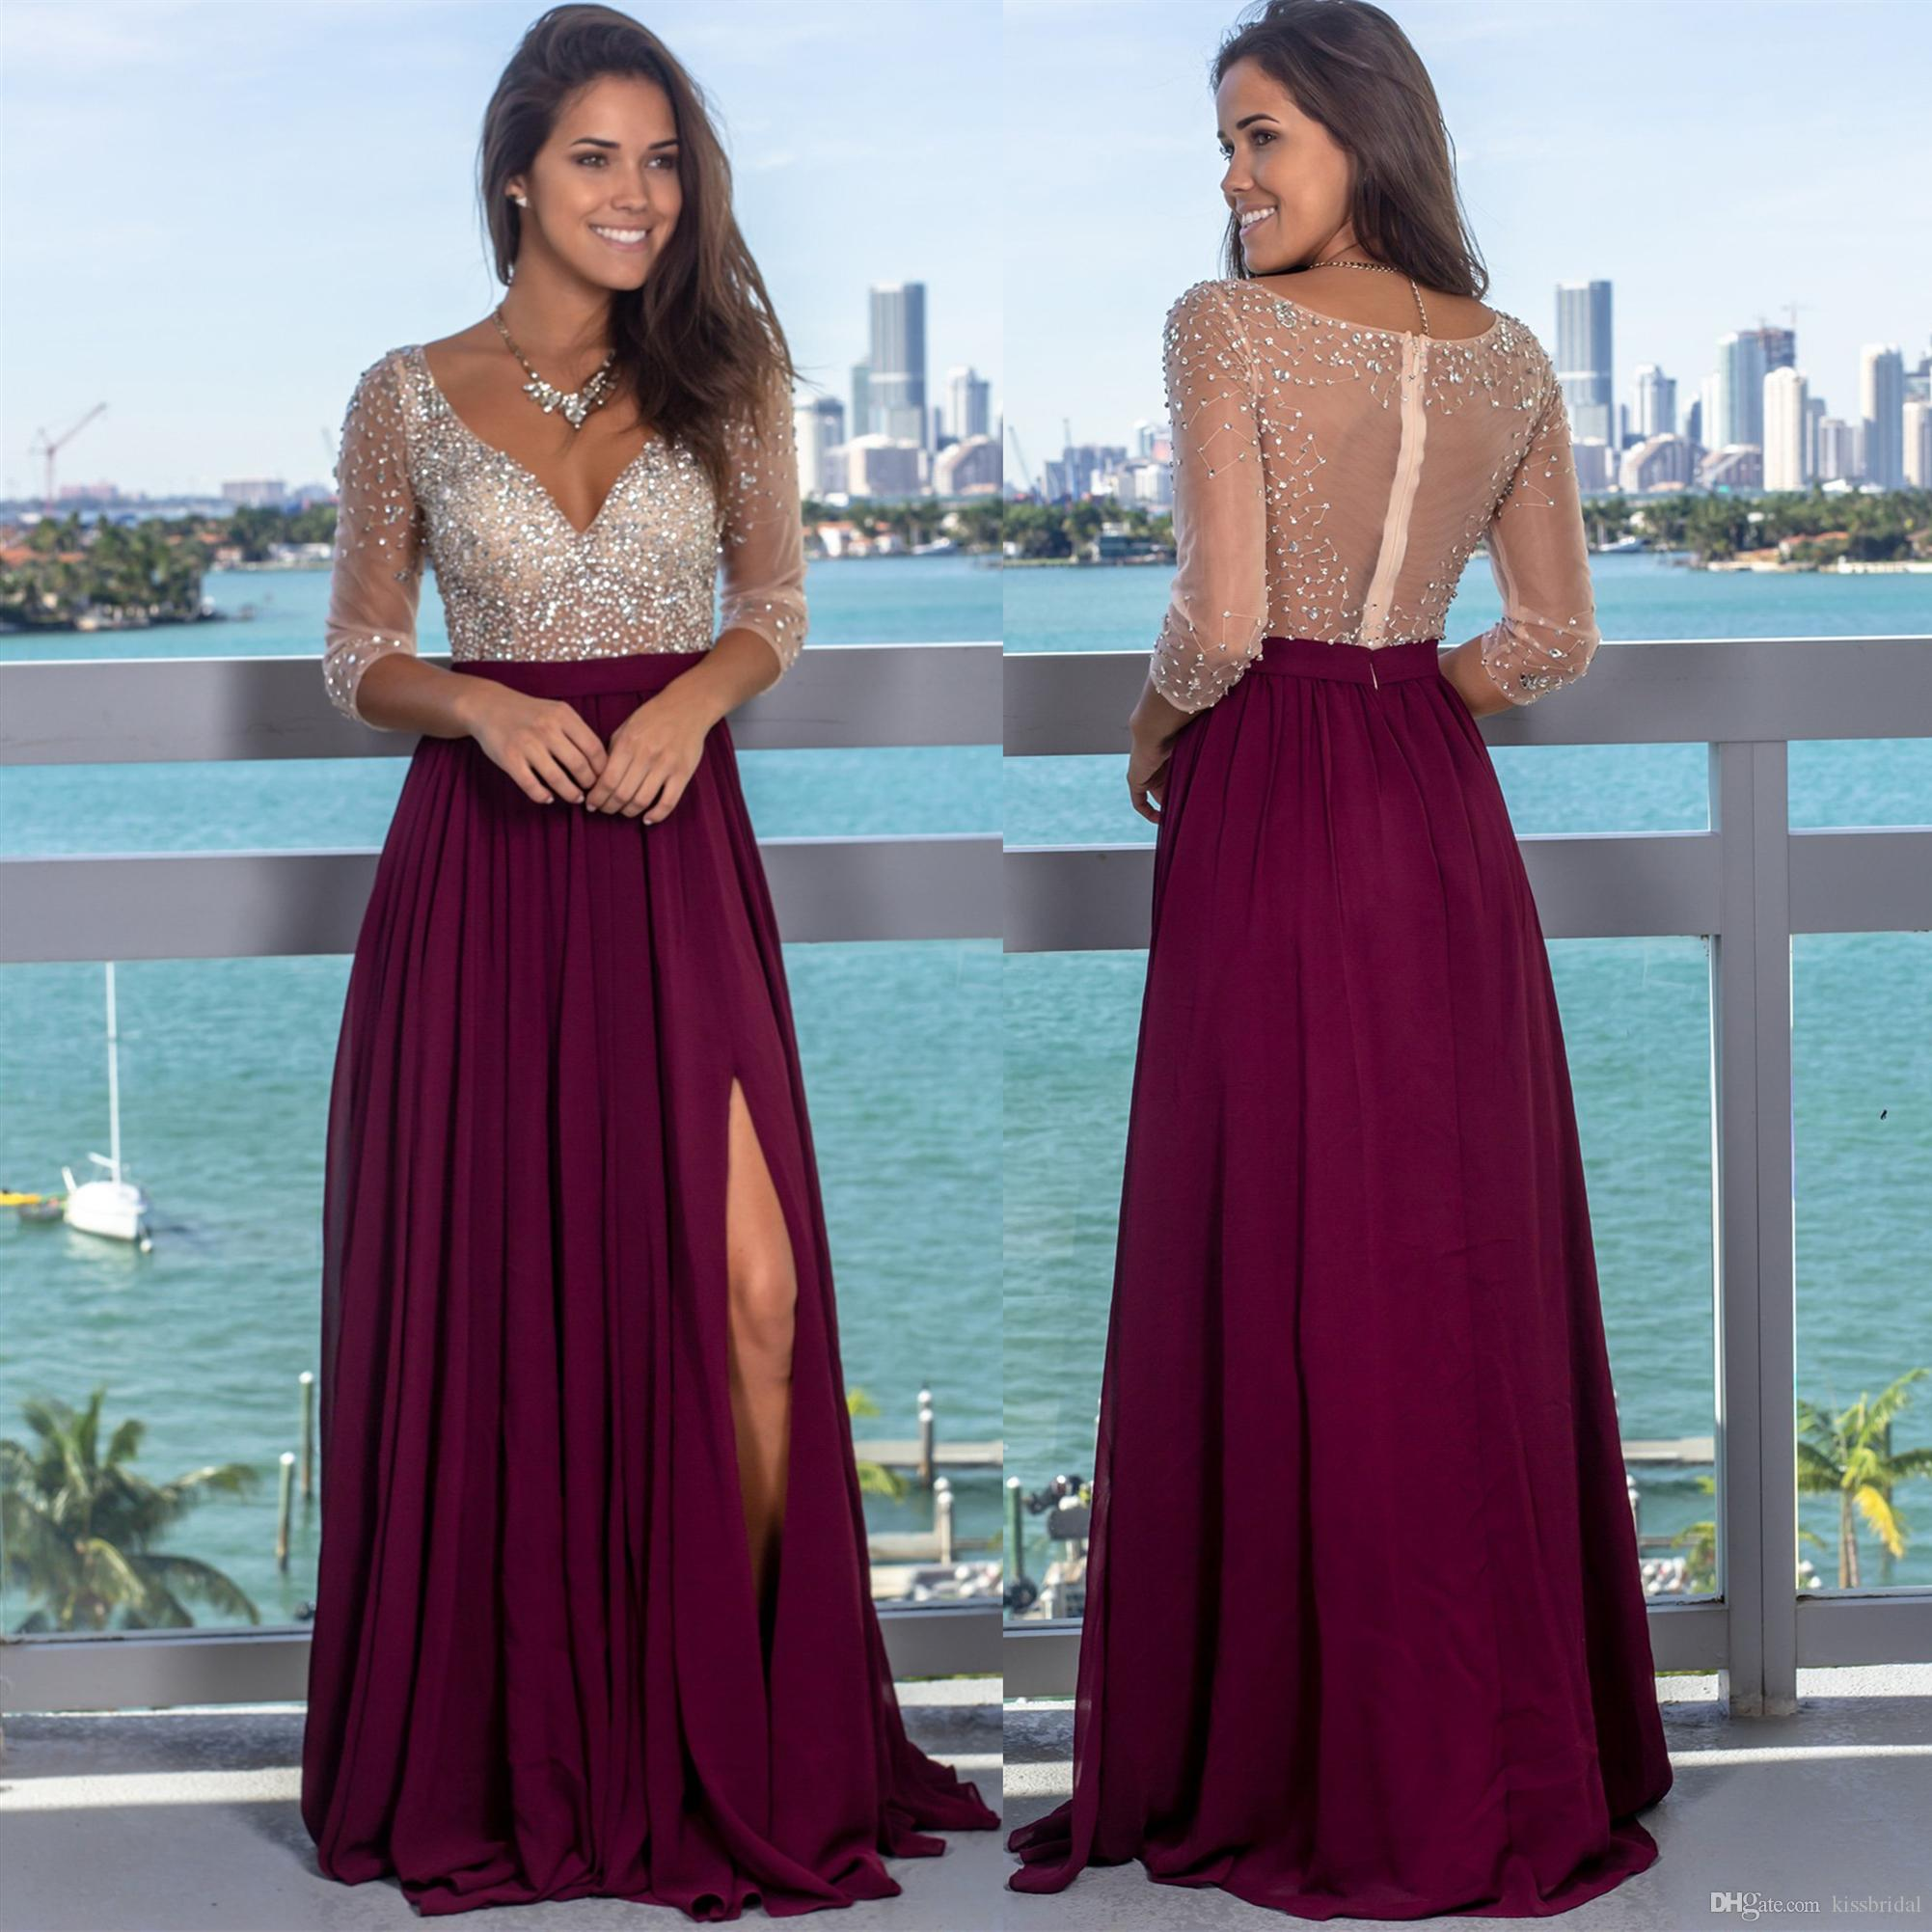 a6c56b67833 Crystal Beaded Prom Dresses Long Sleeve V Neck Sheer Back Split Formal  Evening Gowns Chiffon Maxi Dress Cocktail Party Ball Bridesmaid Gown Canada  2019 From ...